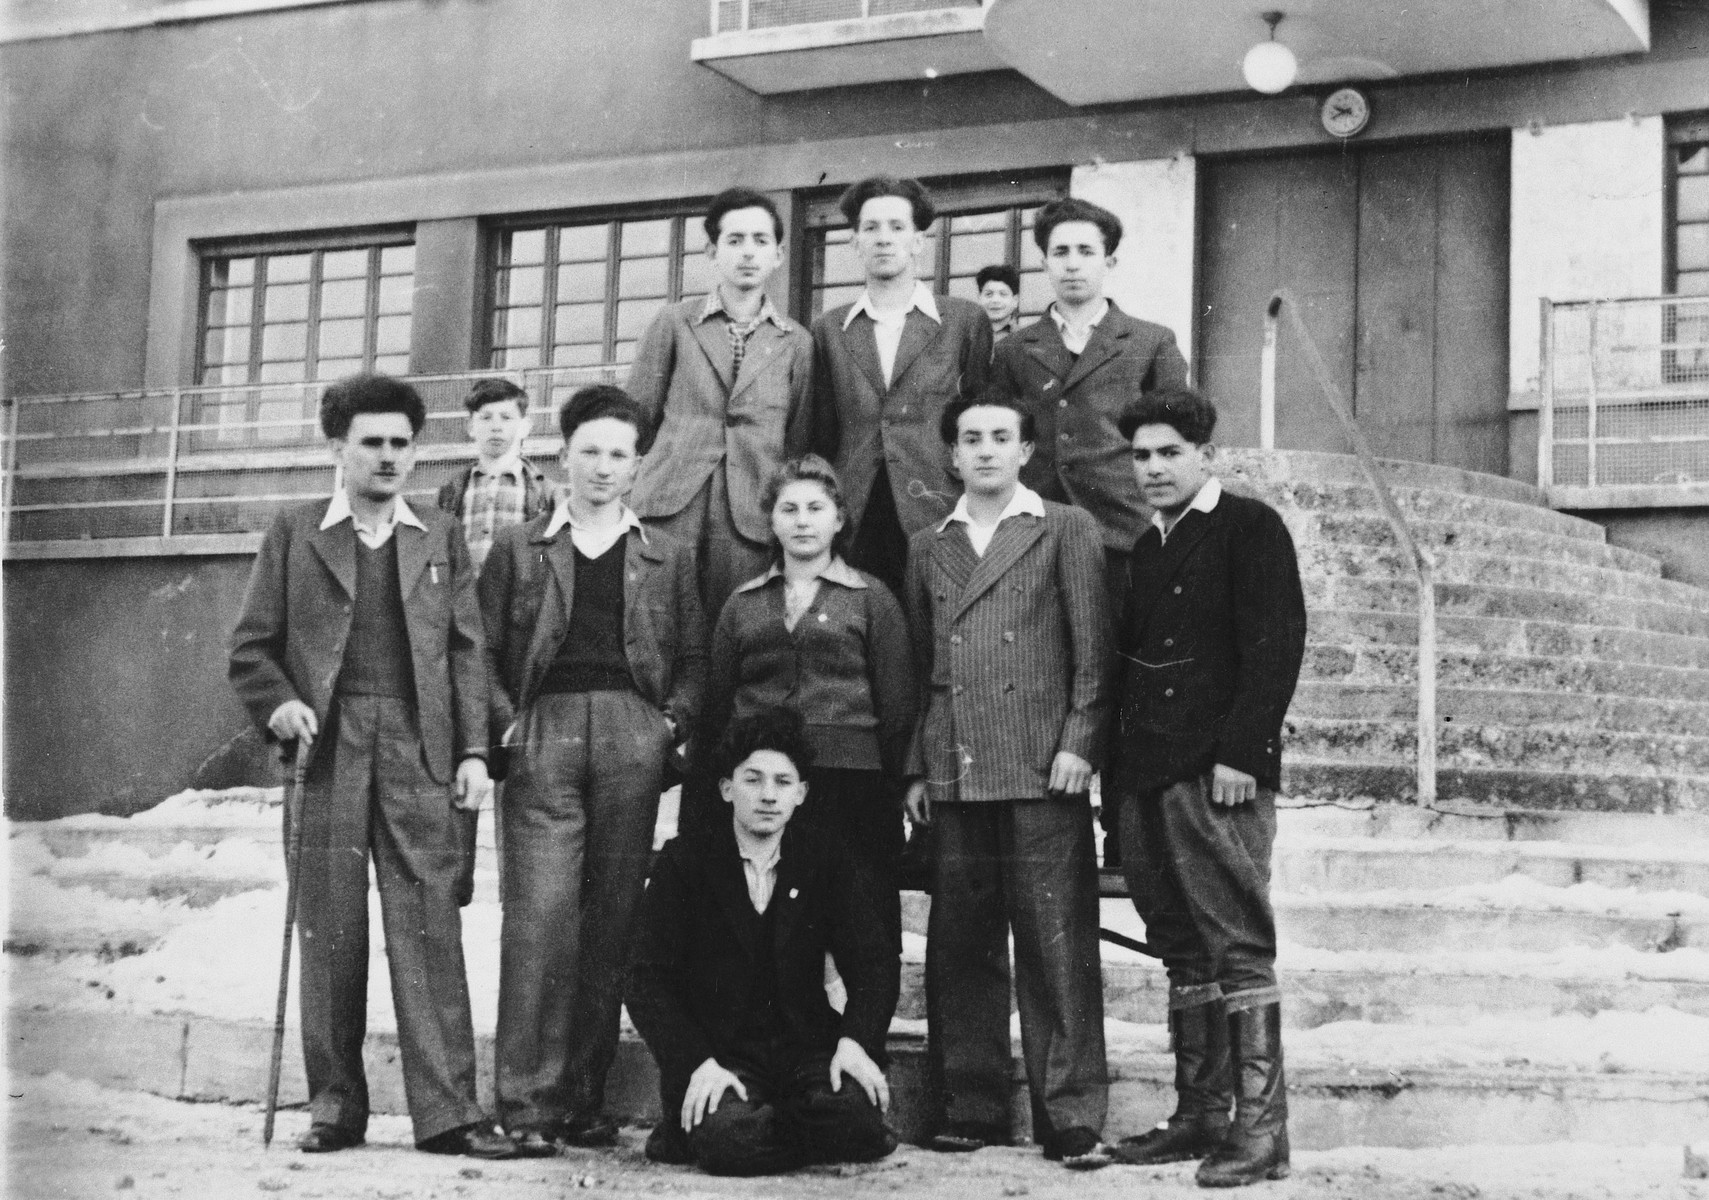 Chana Scheiner poses with a group of boys outside the Selvino children's home.  Also pictured are Chaim Bernstein (senior leader of Gordonia) on the far left, Chaim Lagazhitsky (middle row, second from the right) and and Twi Margulies (top row, center).